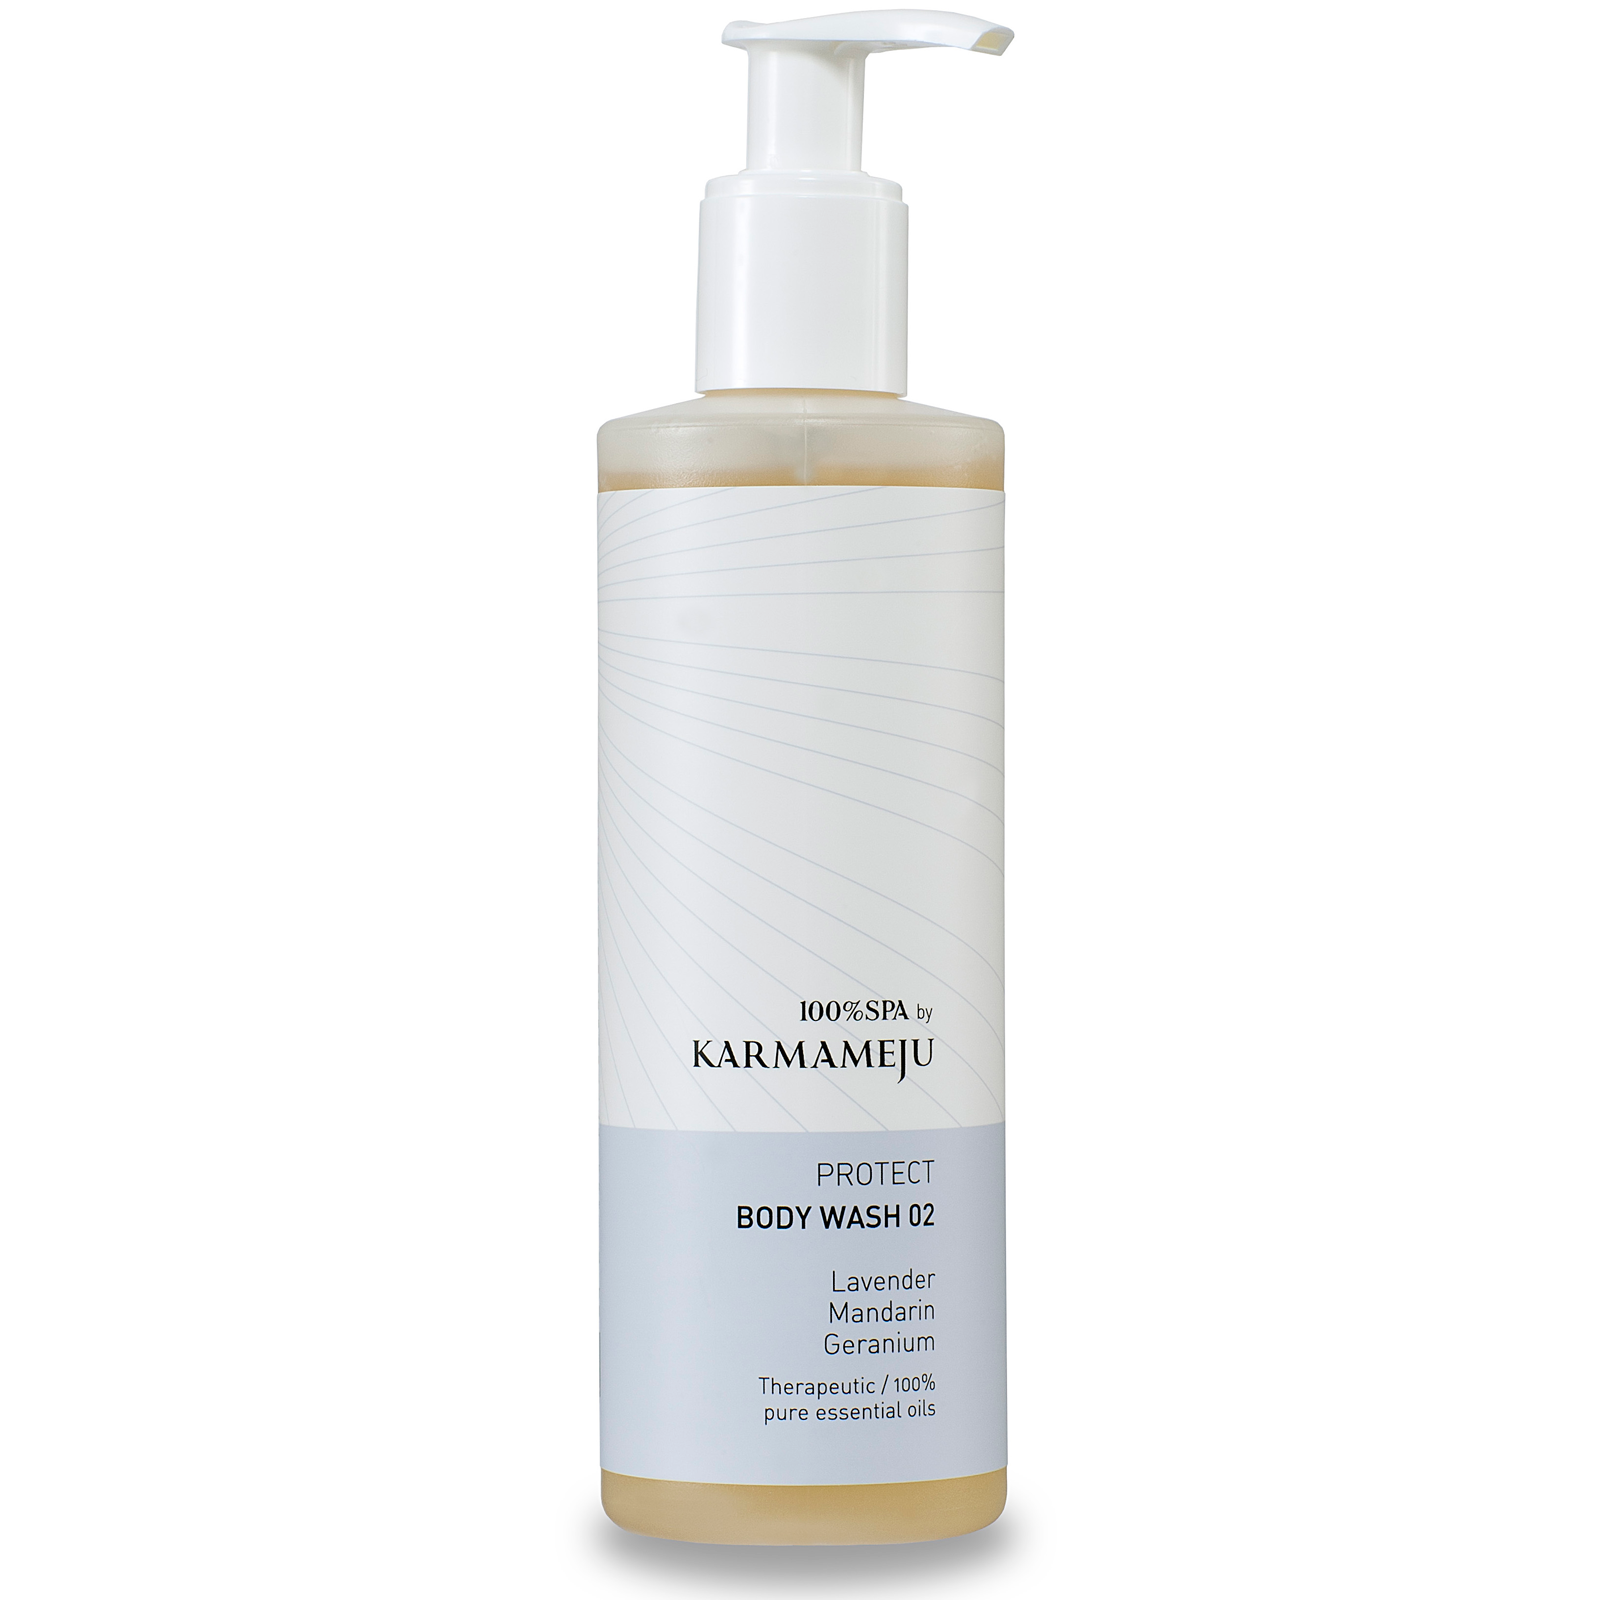 body-wash-protect-body-wash-02-karmameju_1